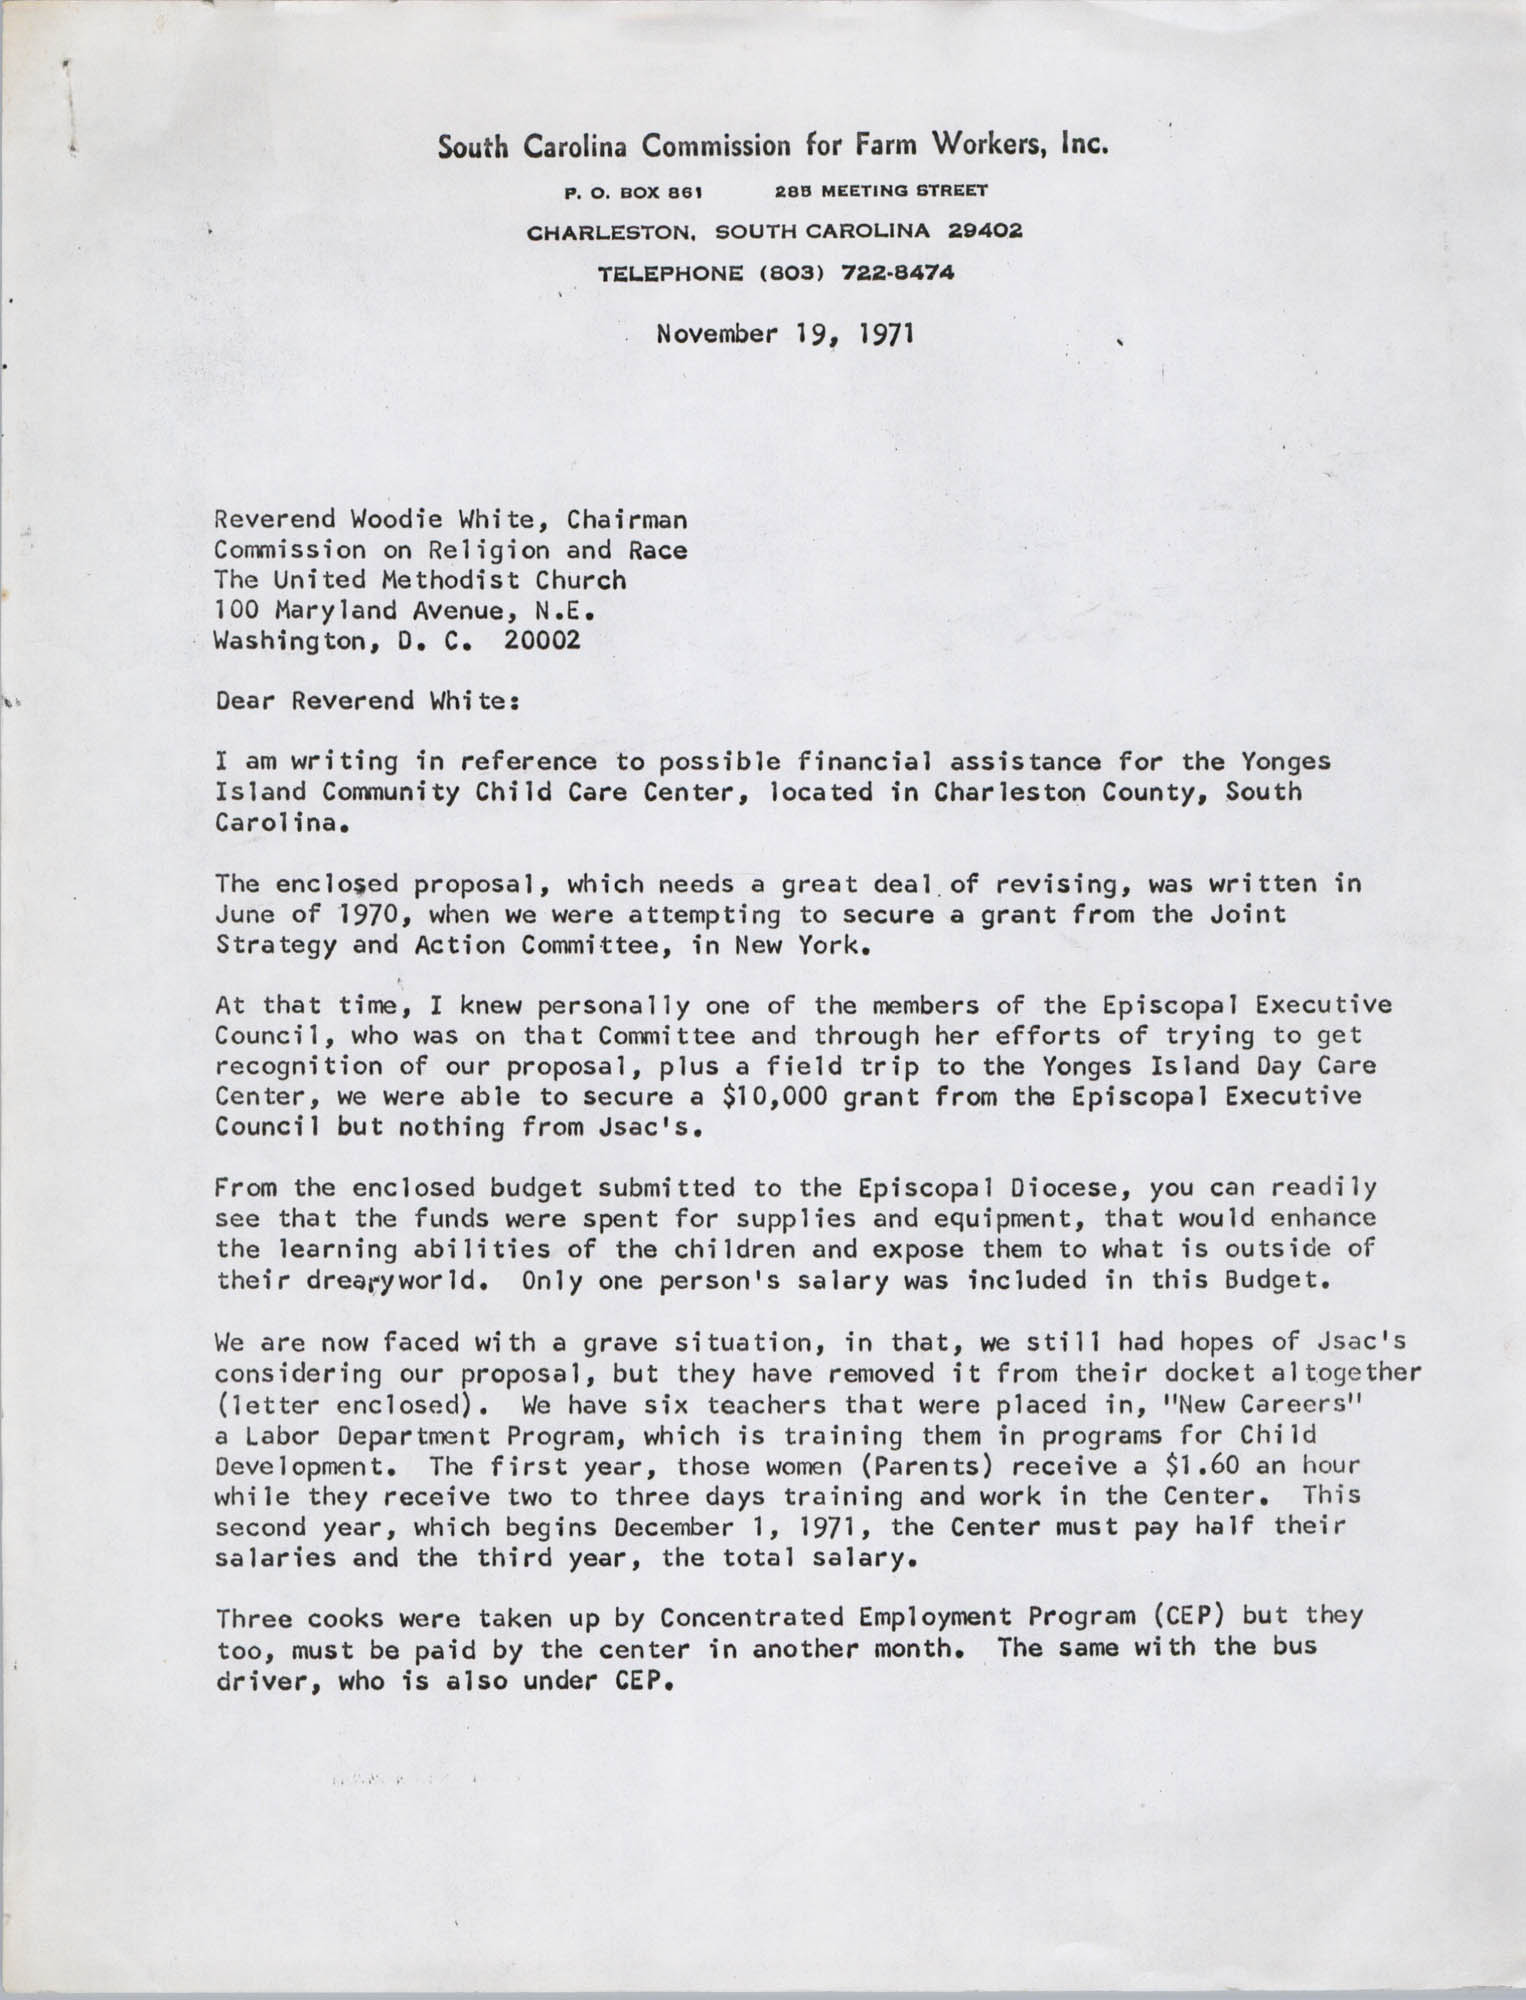 Letter from Bernice V. Robinson to Woodie White, November 19, 1971